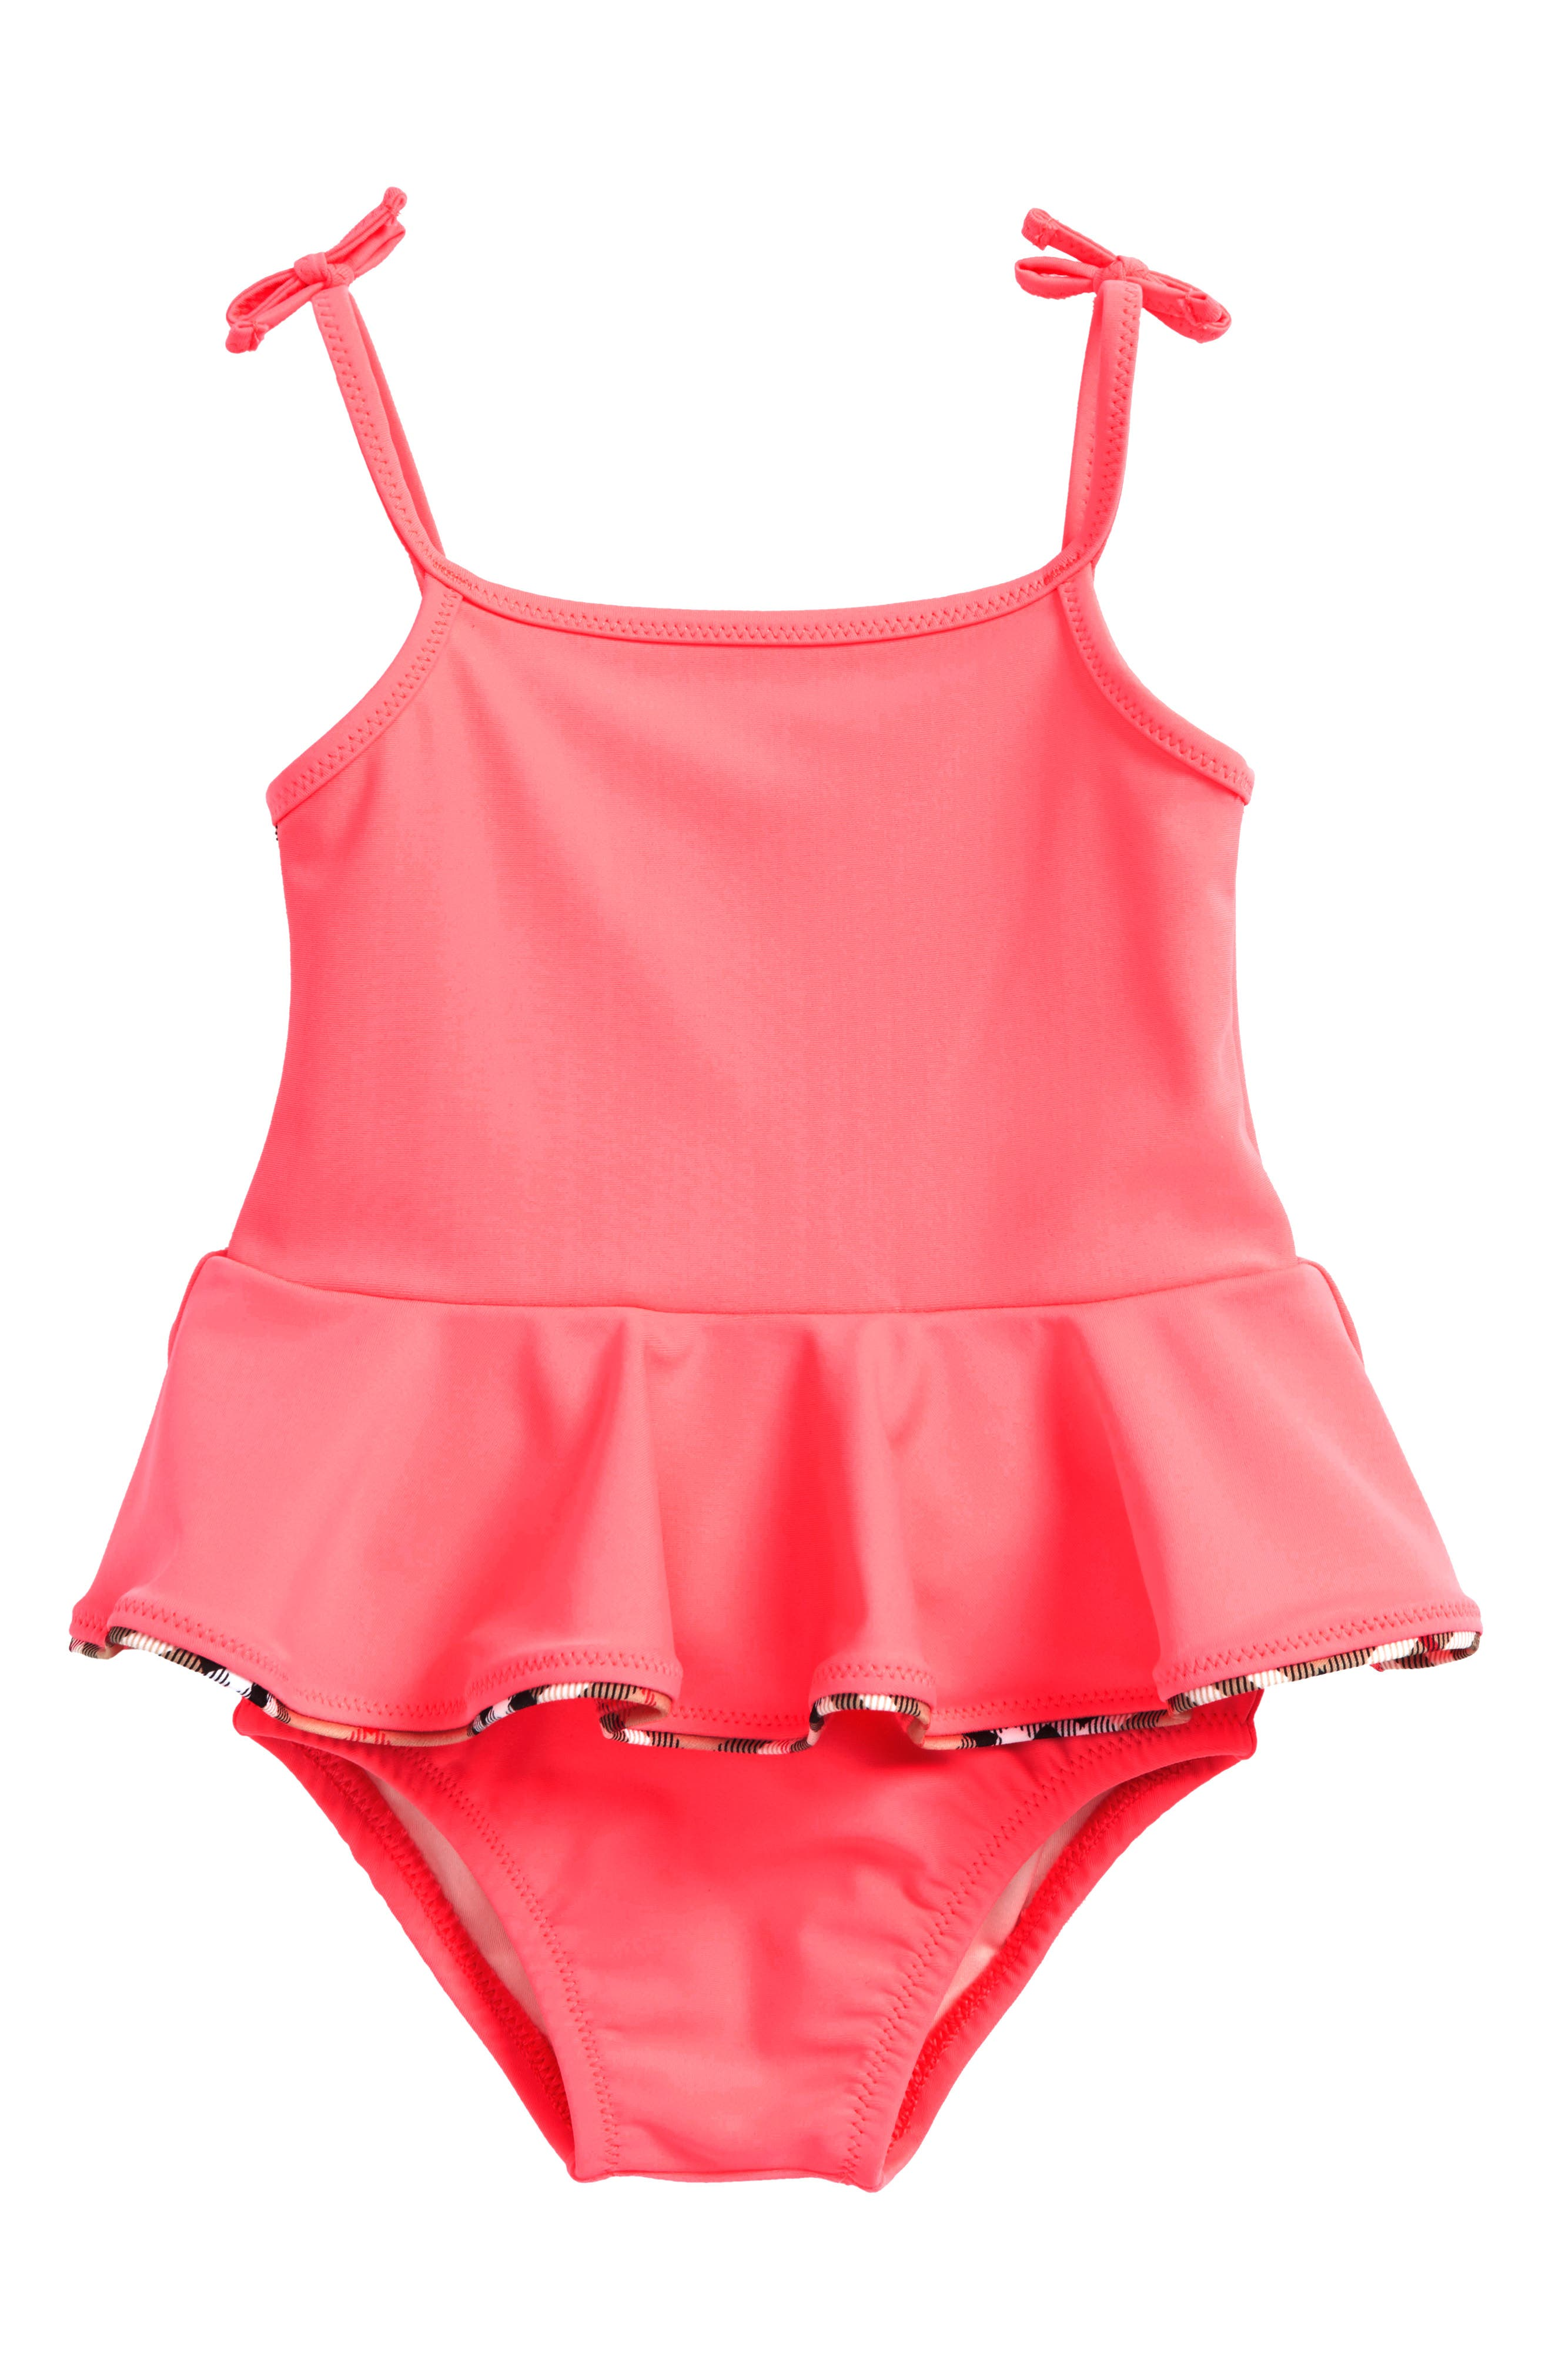 Ludine Skirted One-Piece Swimsuit,                             Main thumbnail 1, color,                             BRIGHT CORAL